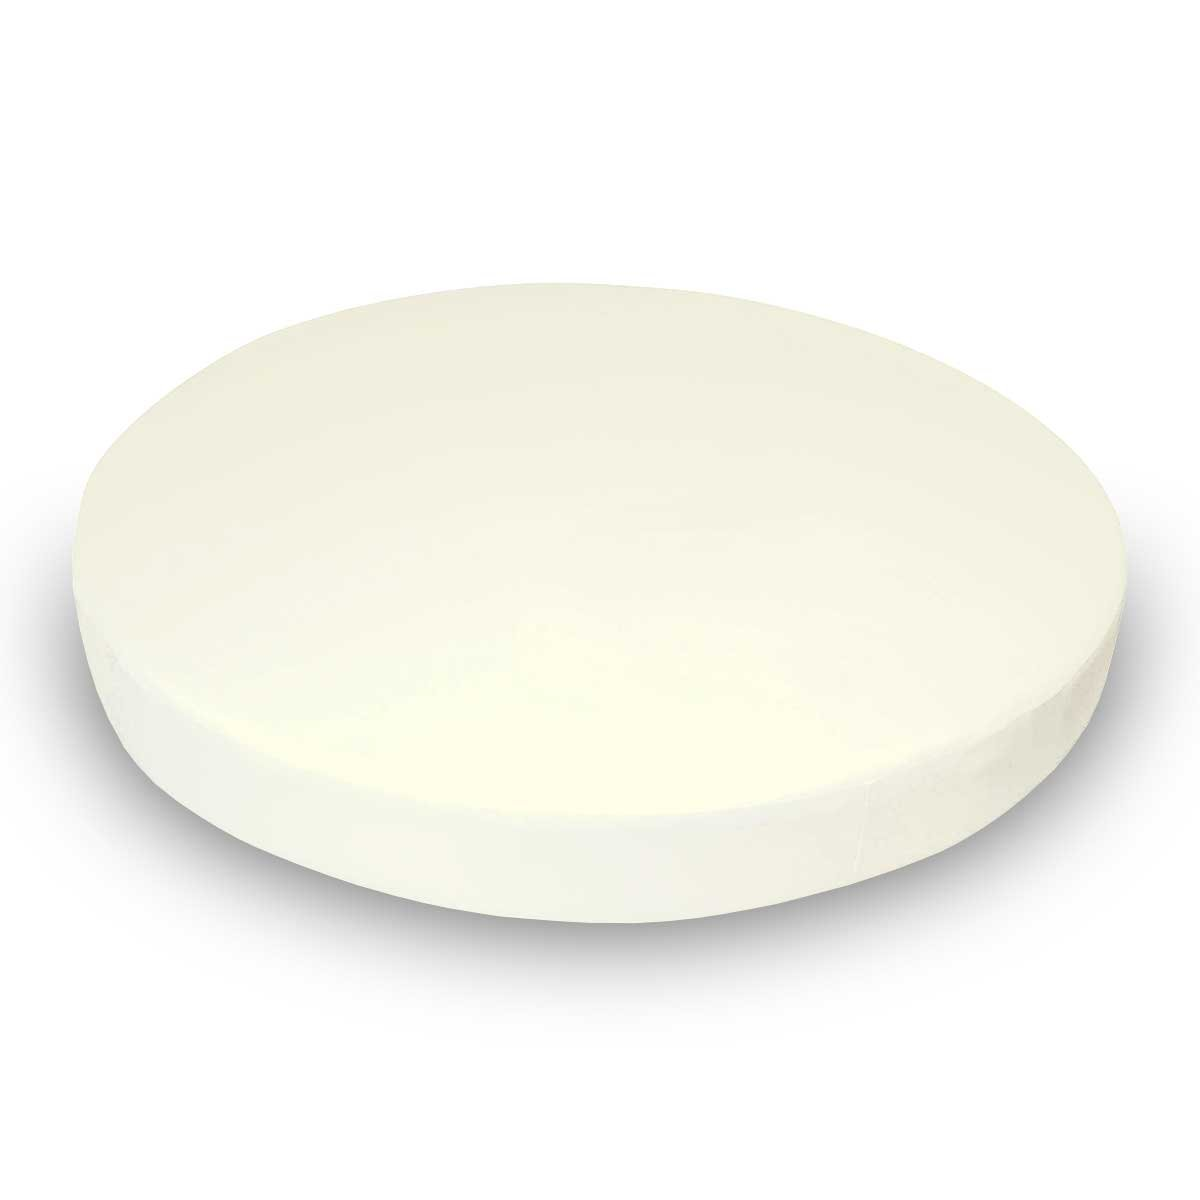 SheetWorld 100% Cotton Jersey Round Crib Sheet, Solid Ivory, 42 x 42, Made In USA